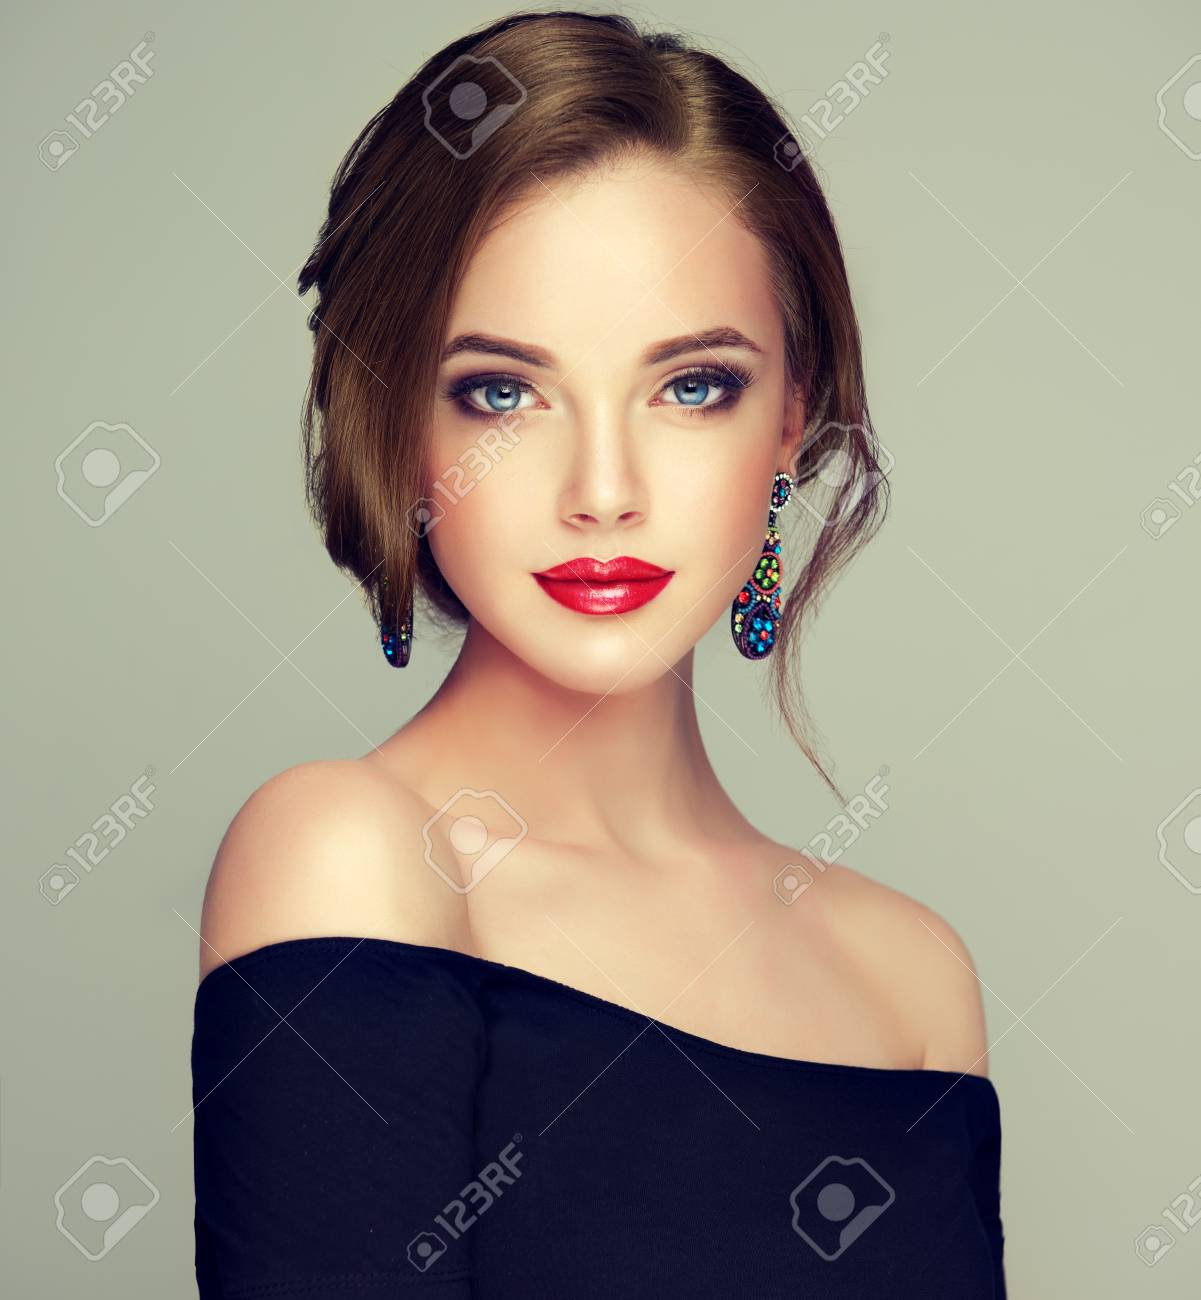 Portrait of young, brown haired beautiful woman with long, well groomed hair gathered in elegant evening hairstyle. Hairdressing art, hair care and beauty products. - 105387636